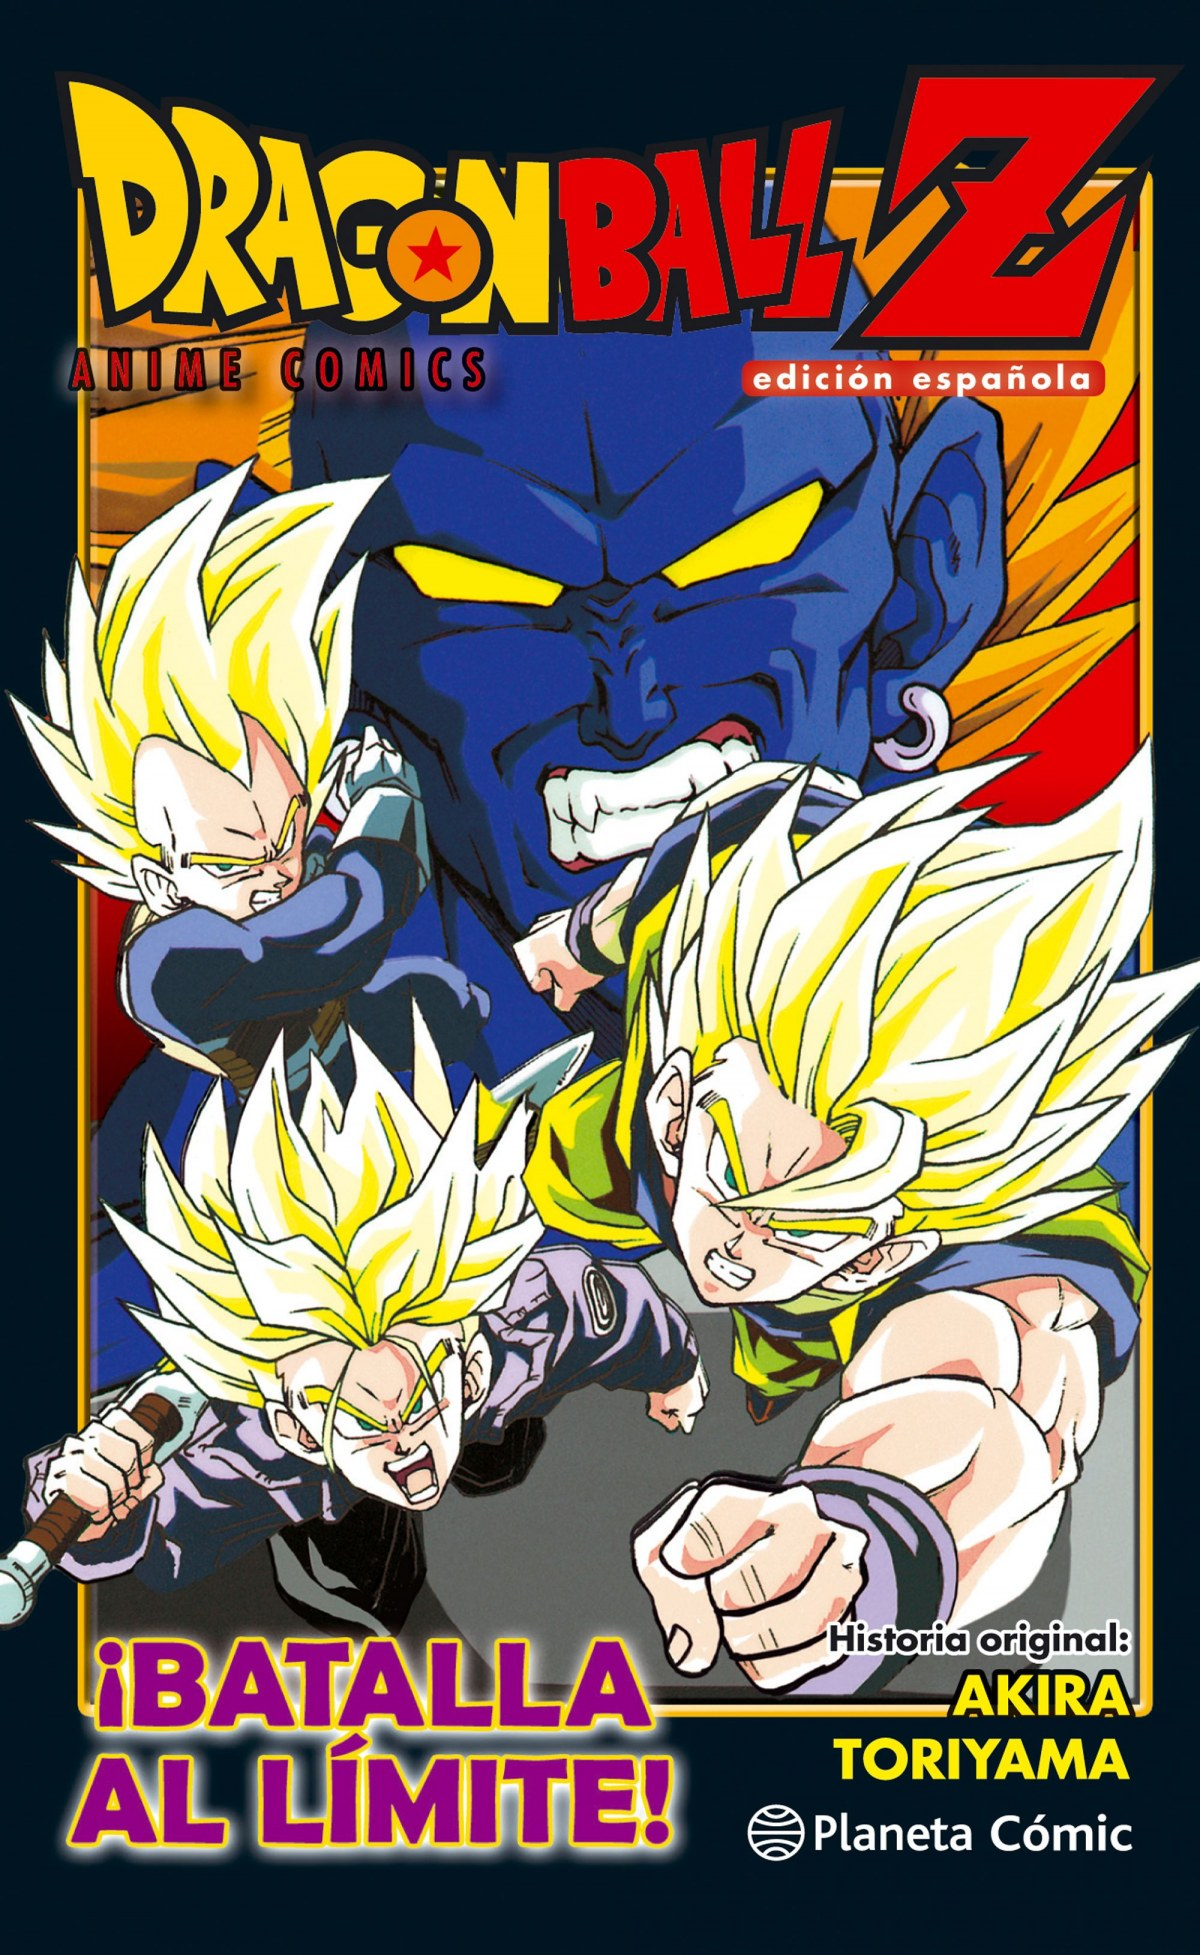 DRAGON BALL Z ANIME COMIC ­BATALLA EXTREMA!